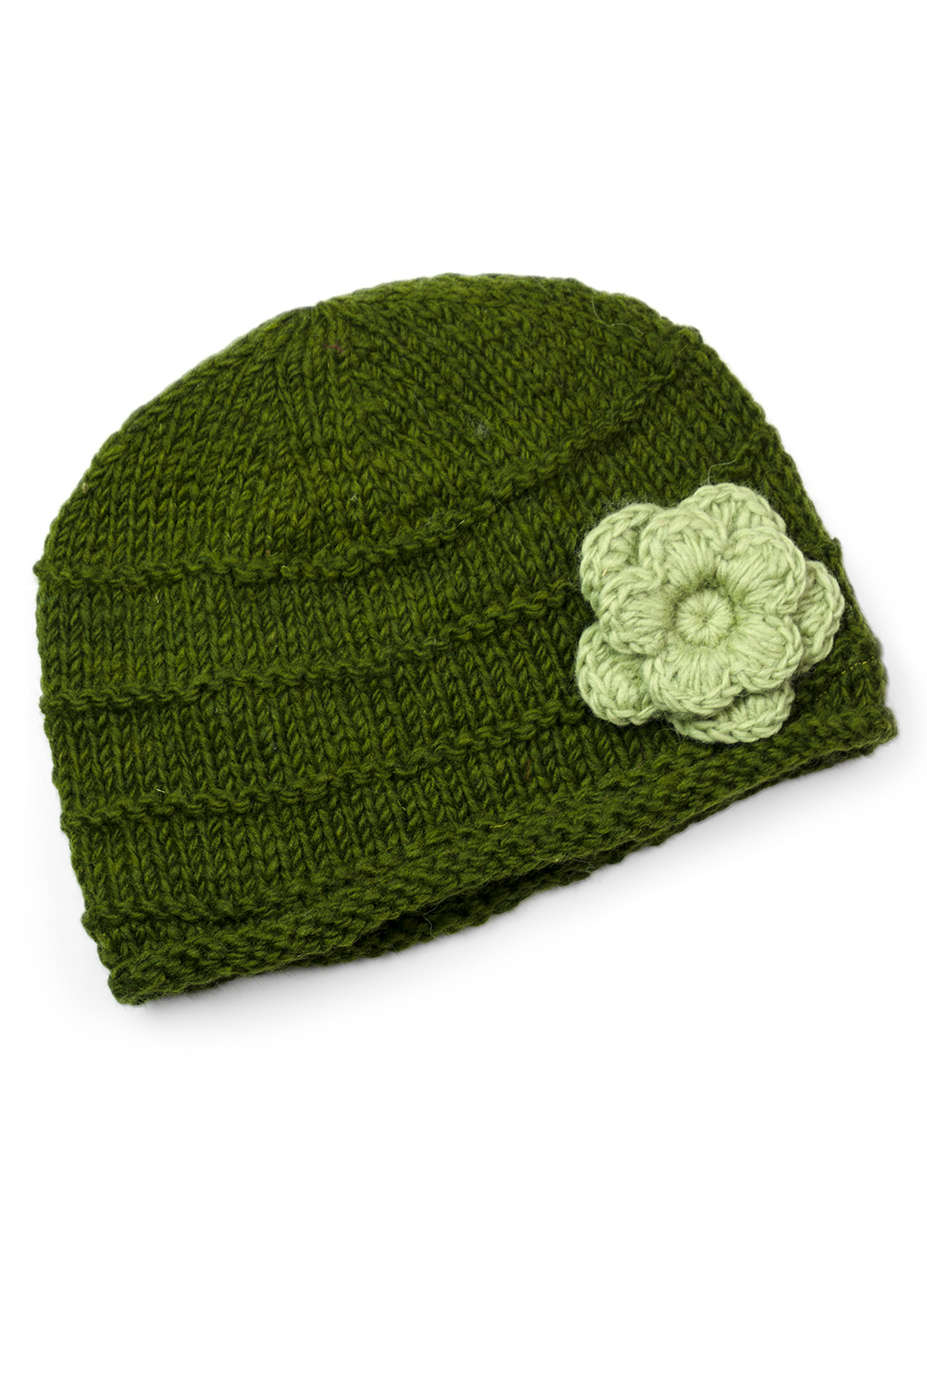 Wool Flowery Ribbed Caps Hat